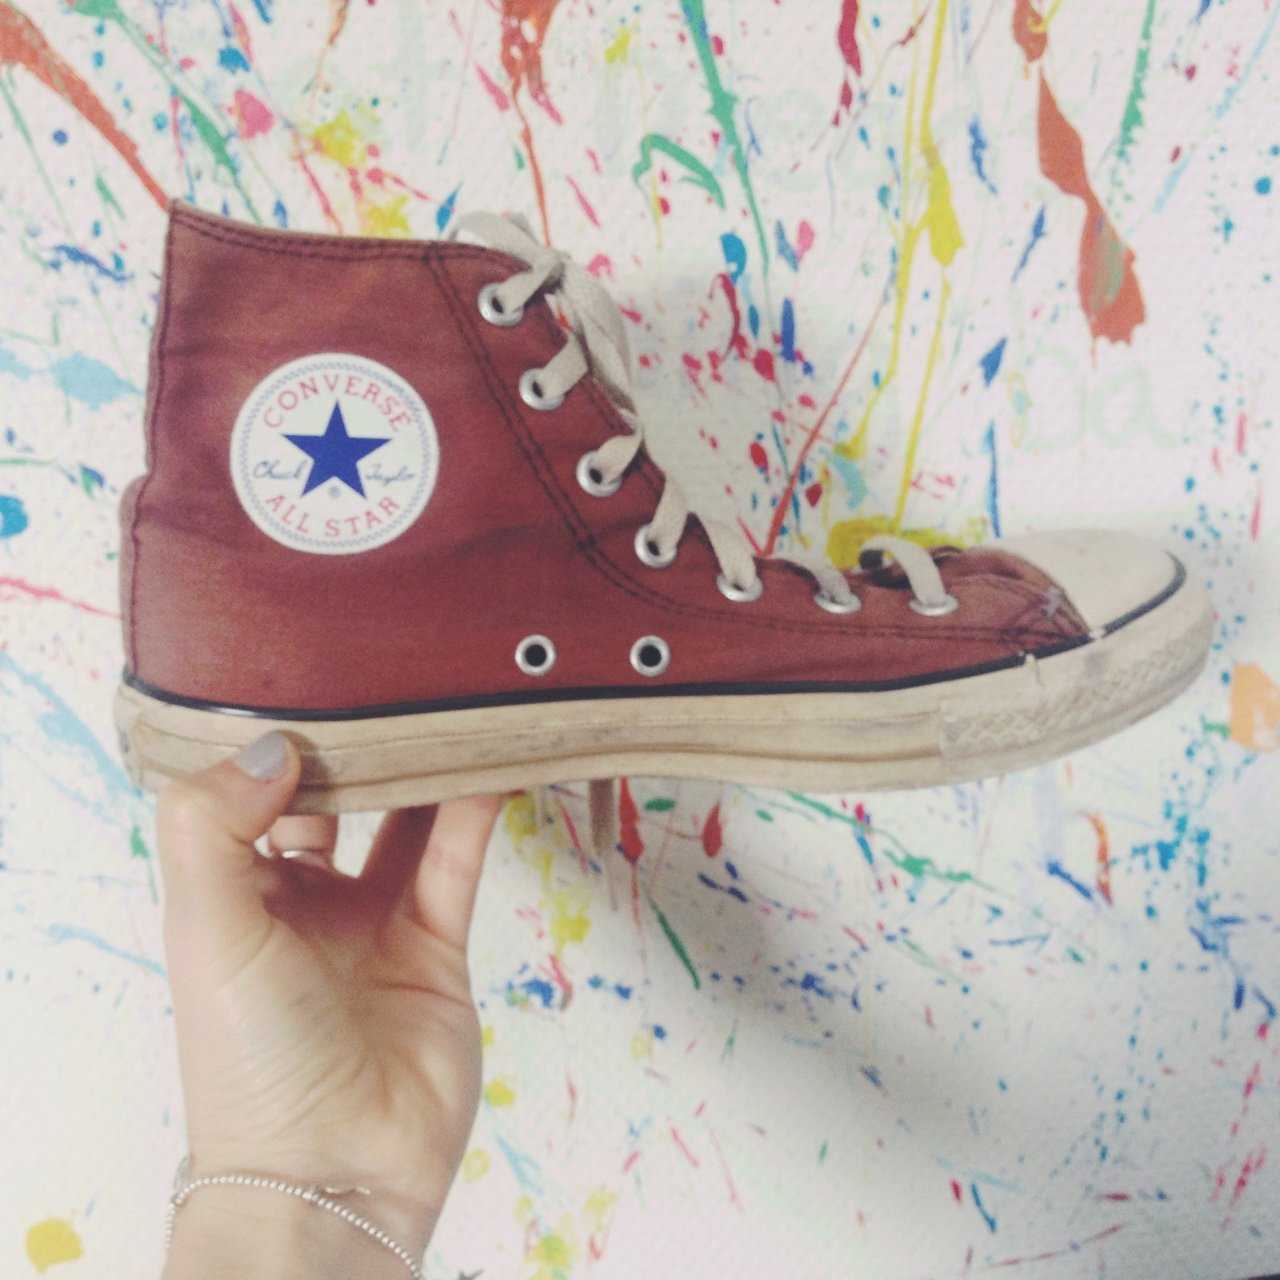 b30d1d5d340f 👟 Brown high tops Converse All Stars 👟 UK SIZE 5    used A - Depop